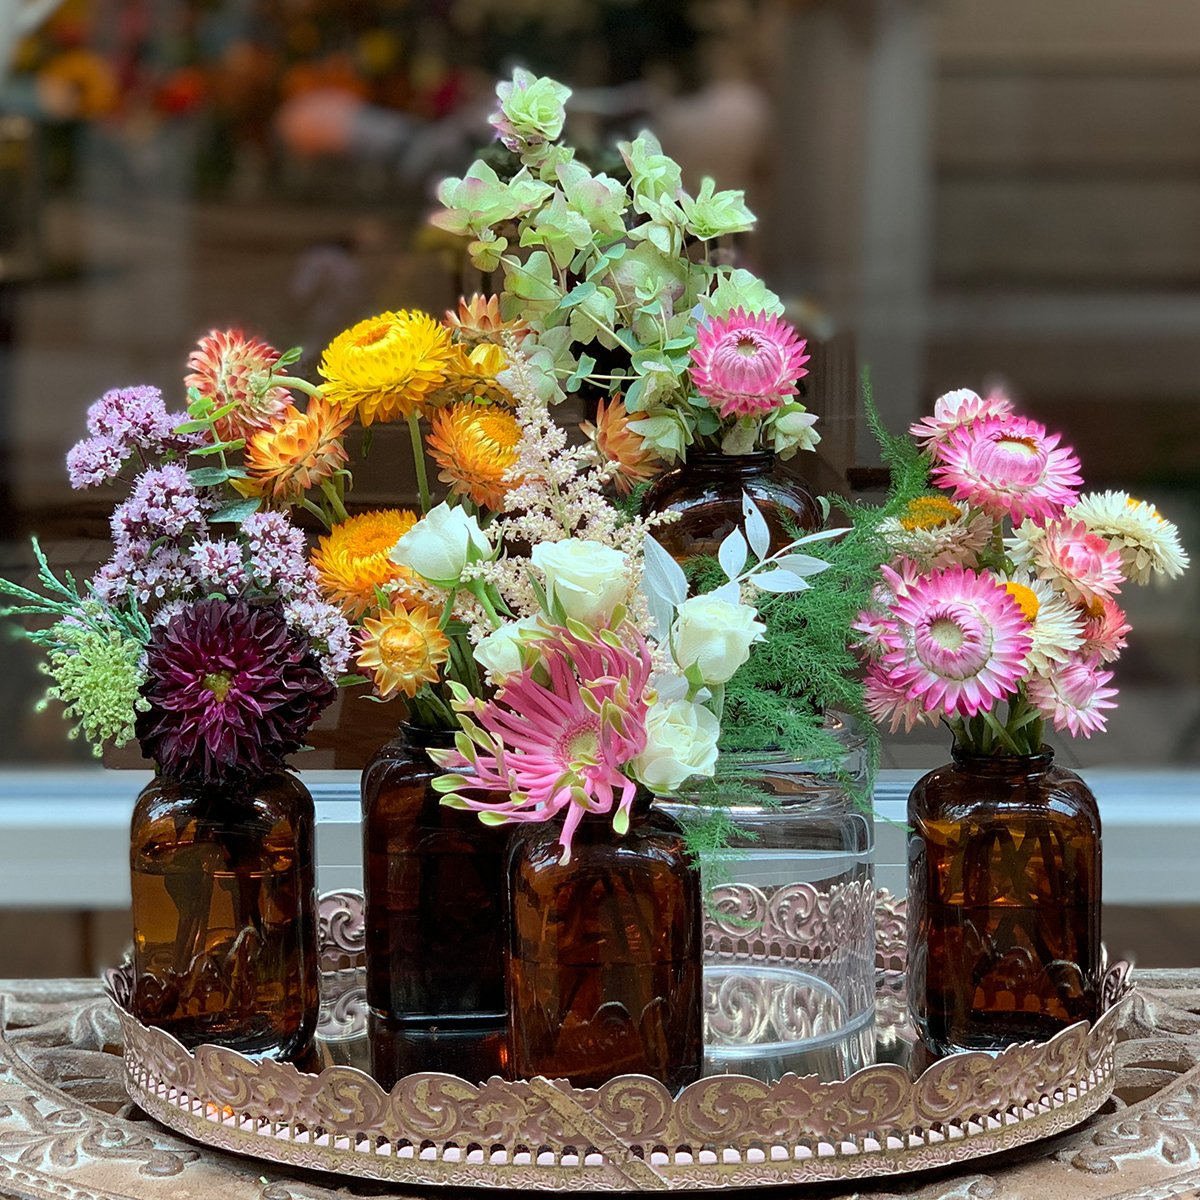 Antique Brown Vases w/ Coordinating Flowers (5 pieces)